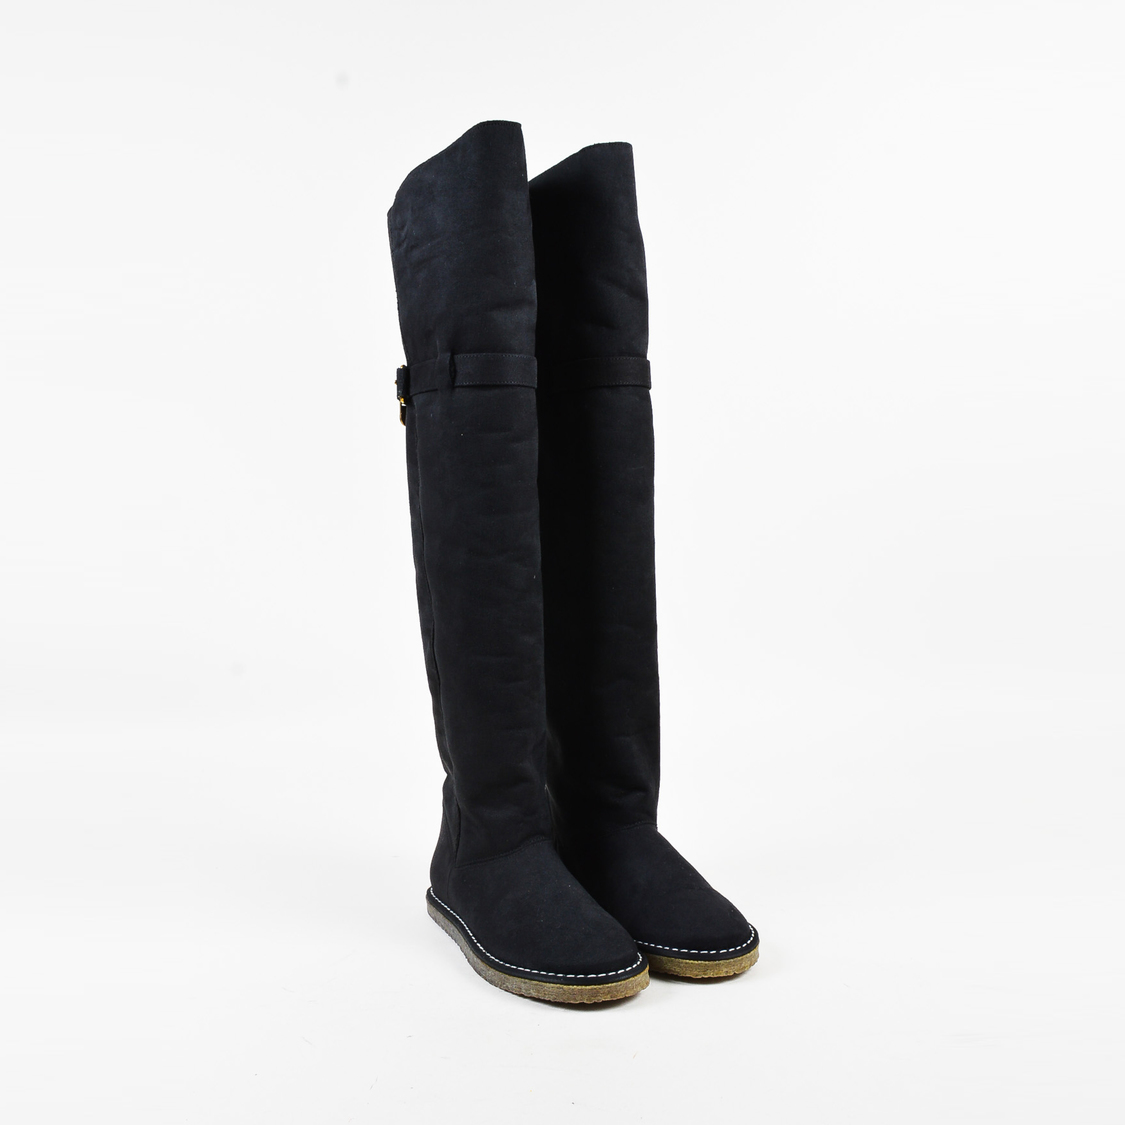 sale classic best store to get cheap price Stella McCartney Kickapoo Tall Over-The-Knee Boots clearance 100% guaranteed sale low price TiNVdj